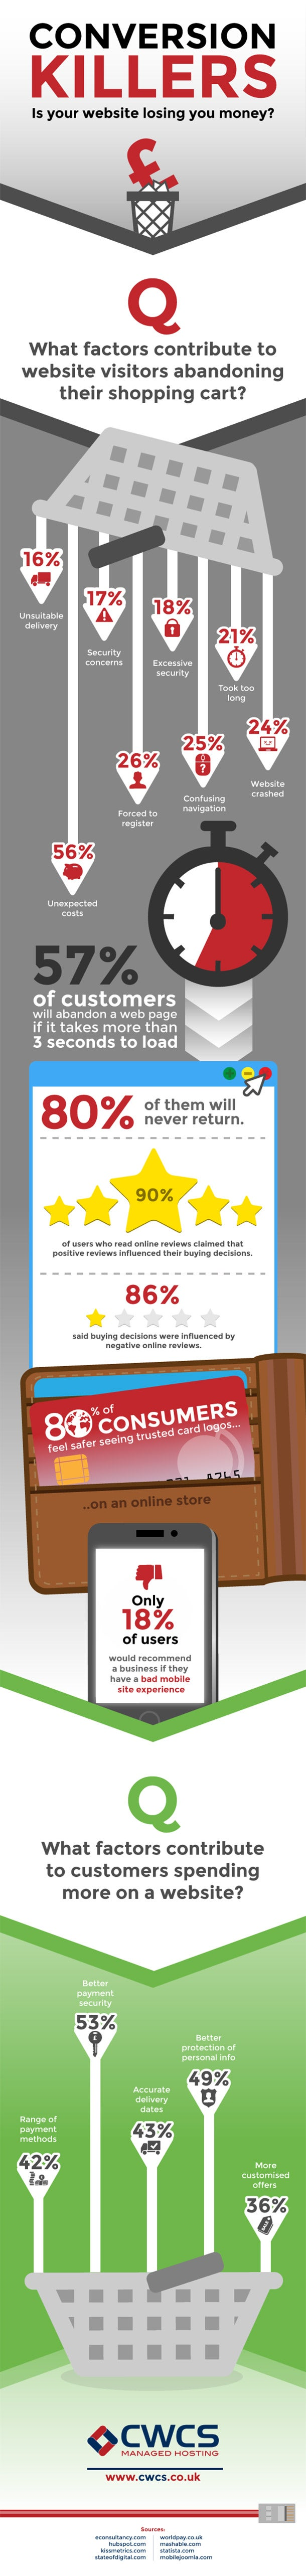 Why Your Ecommerce Site Is Losing Money (Infographic)